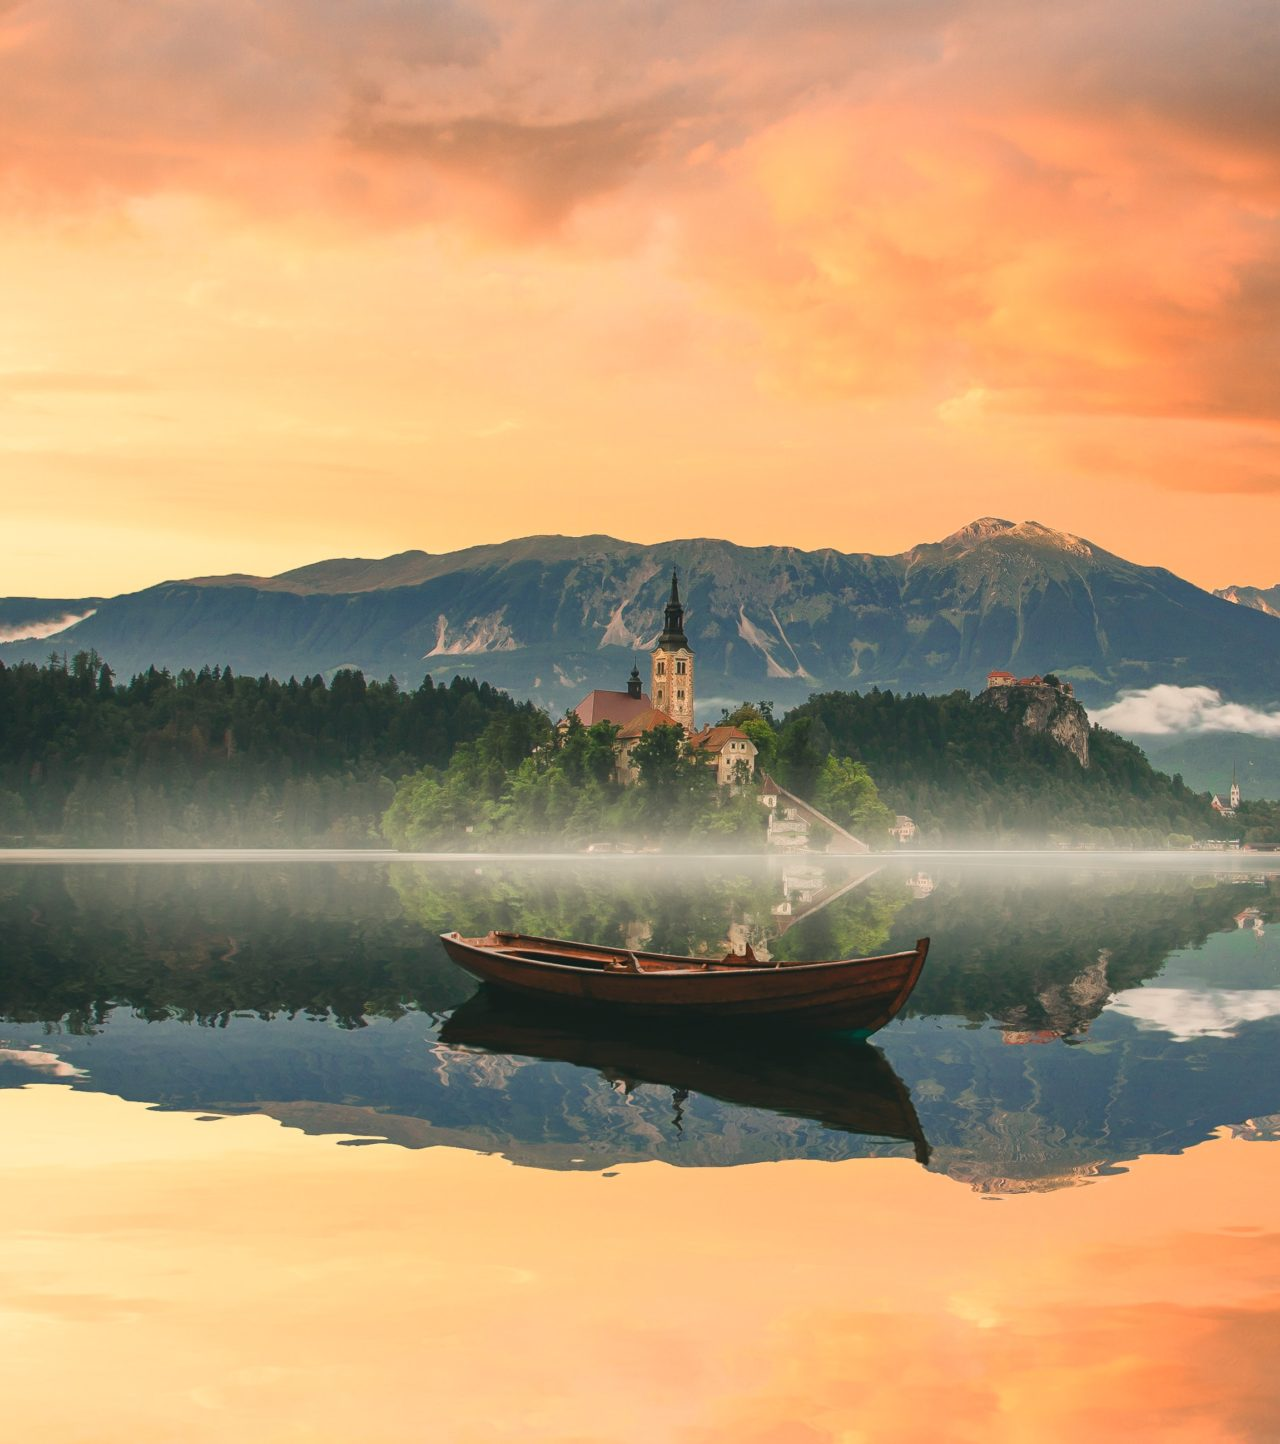 Bled, Slovenia – Most Beautiful Picture of the Day: September 2, 2017 – Most Beautiful Picture